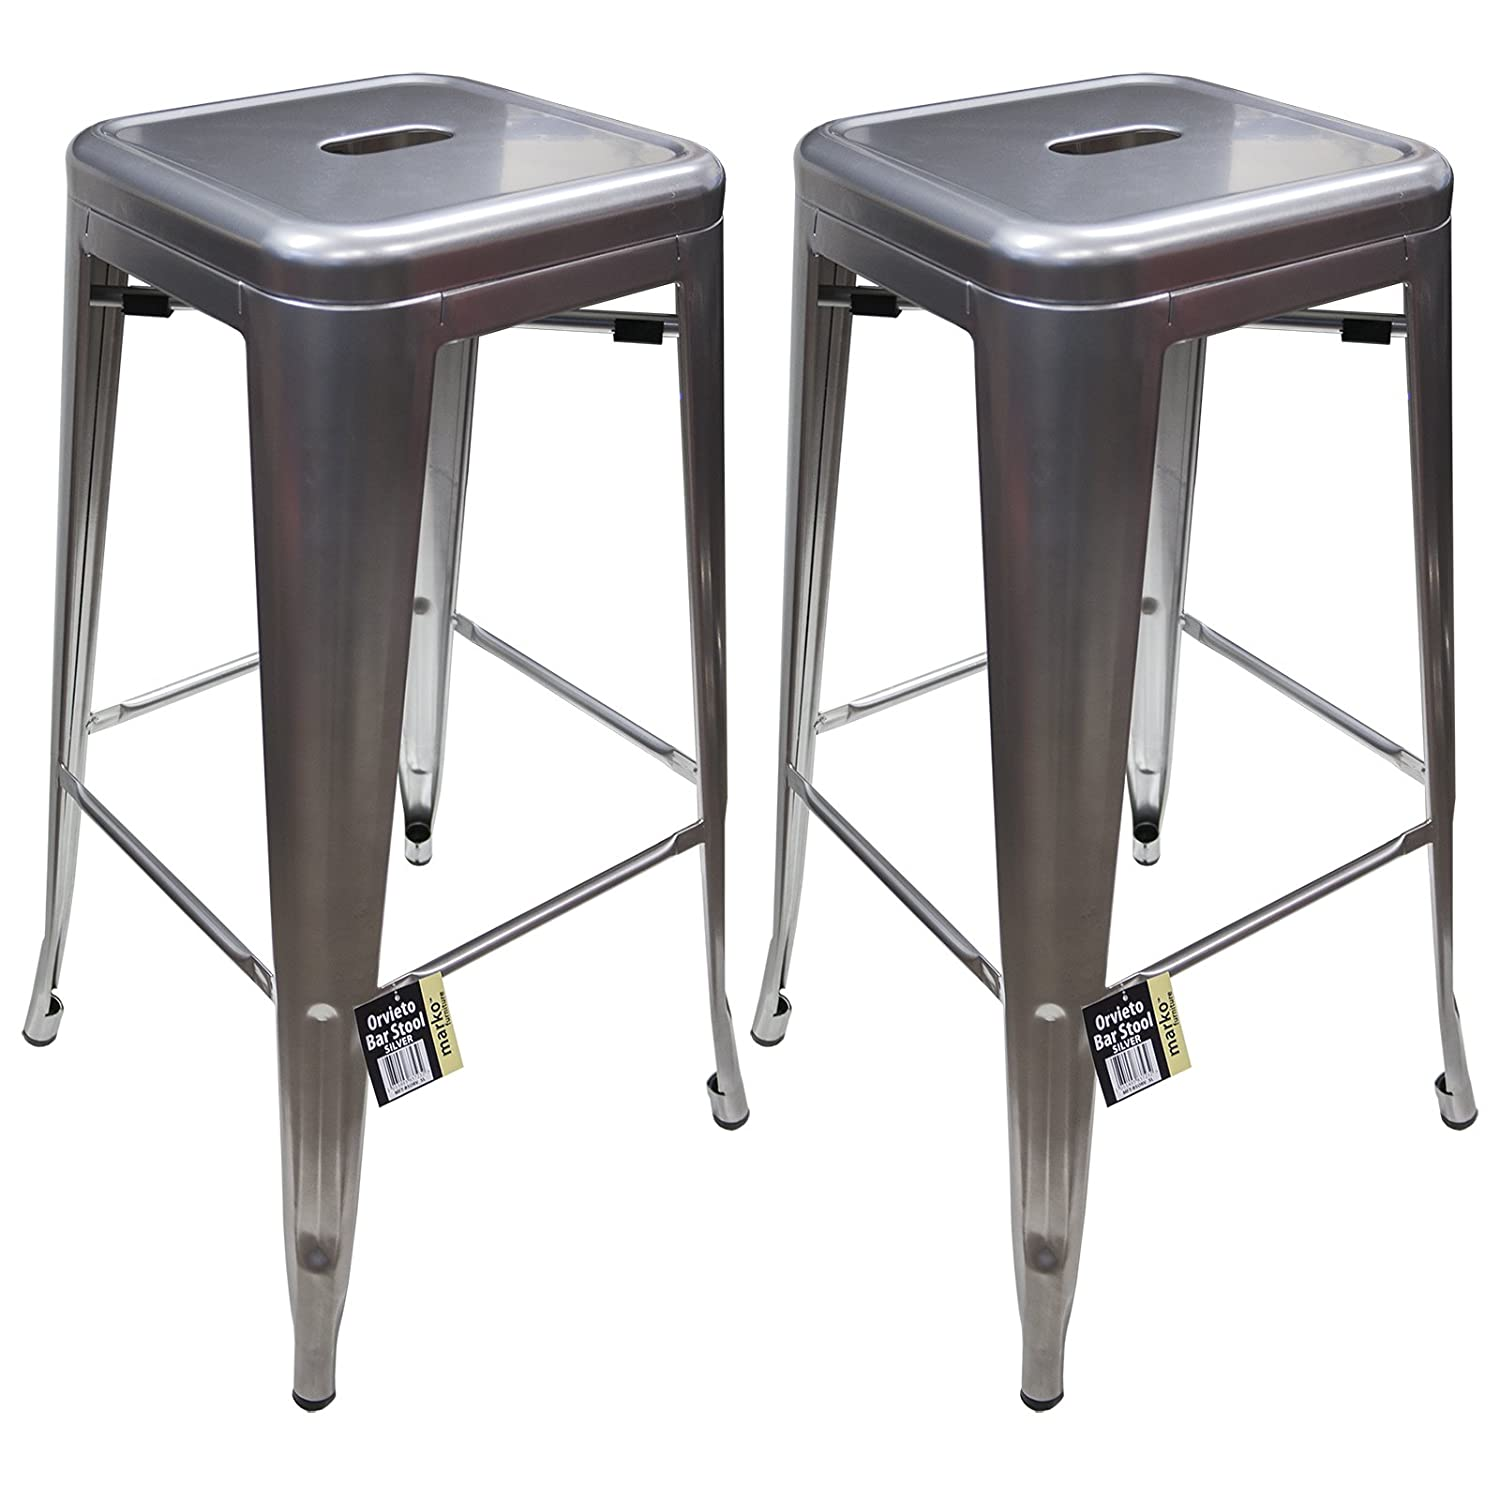 Marko furniture metal breakfast bar stool seat chair industrial vintage classic style kitchen 2 silver amazon co uk kitchen home